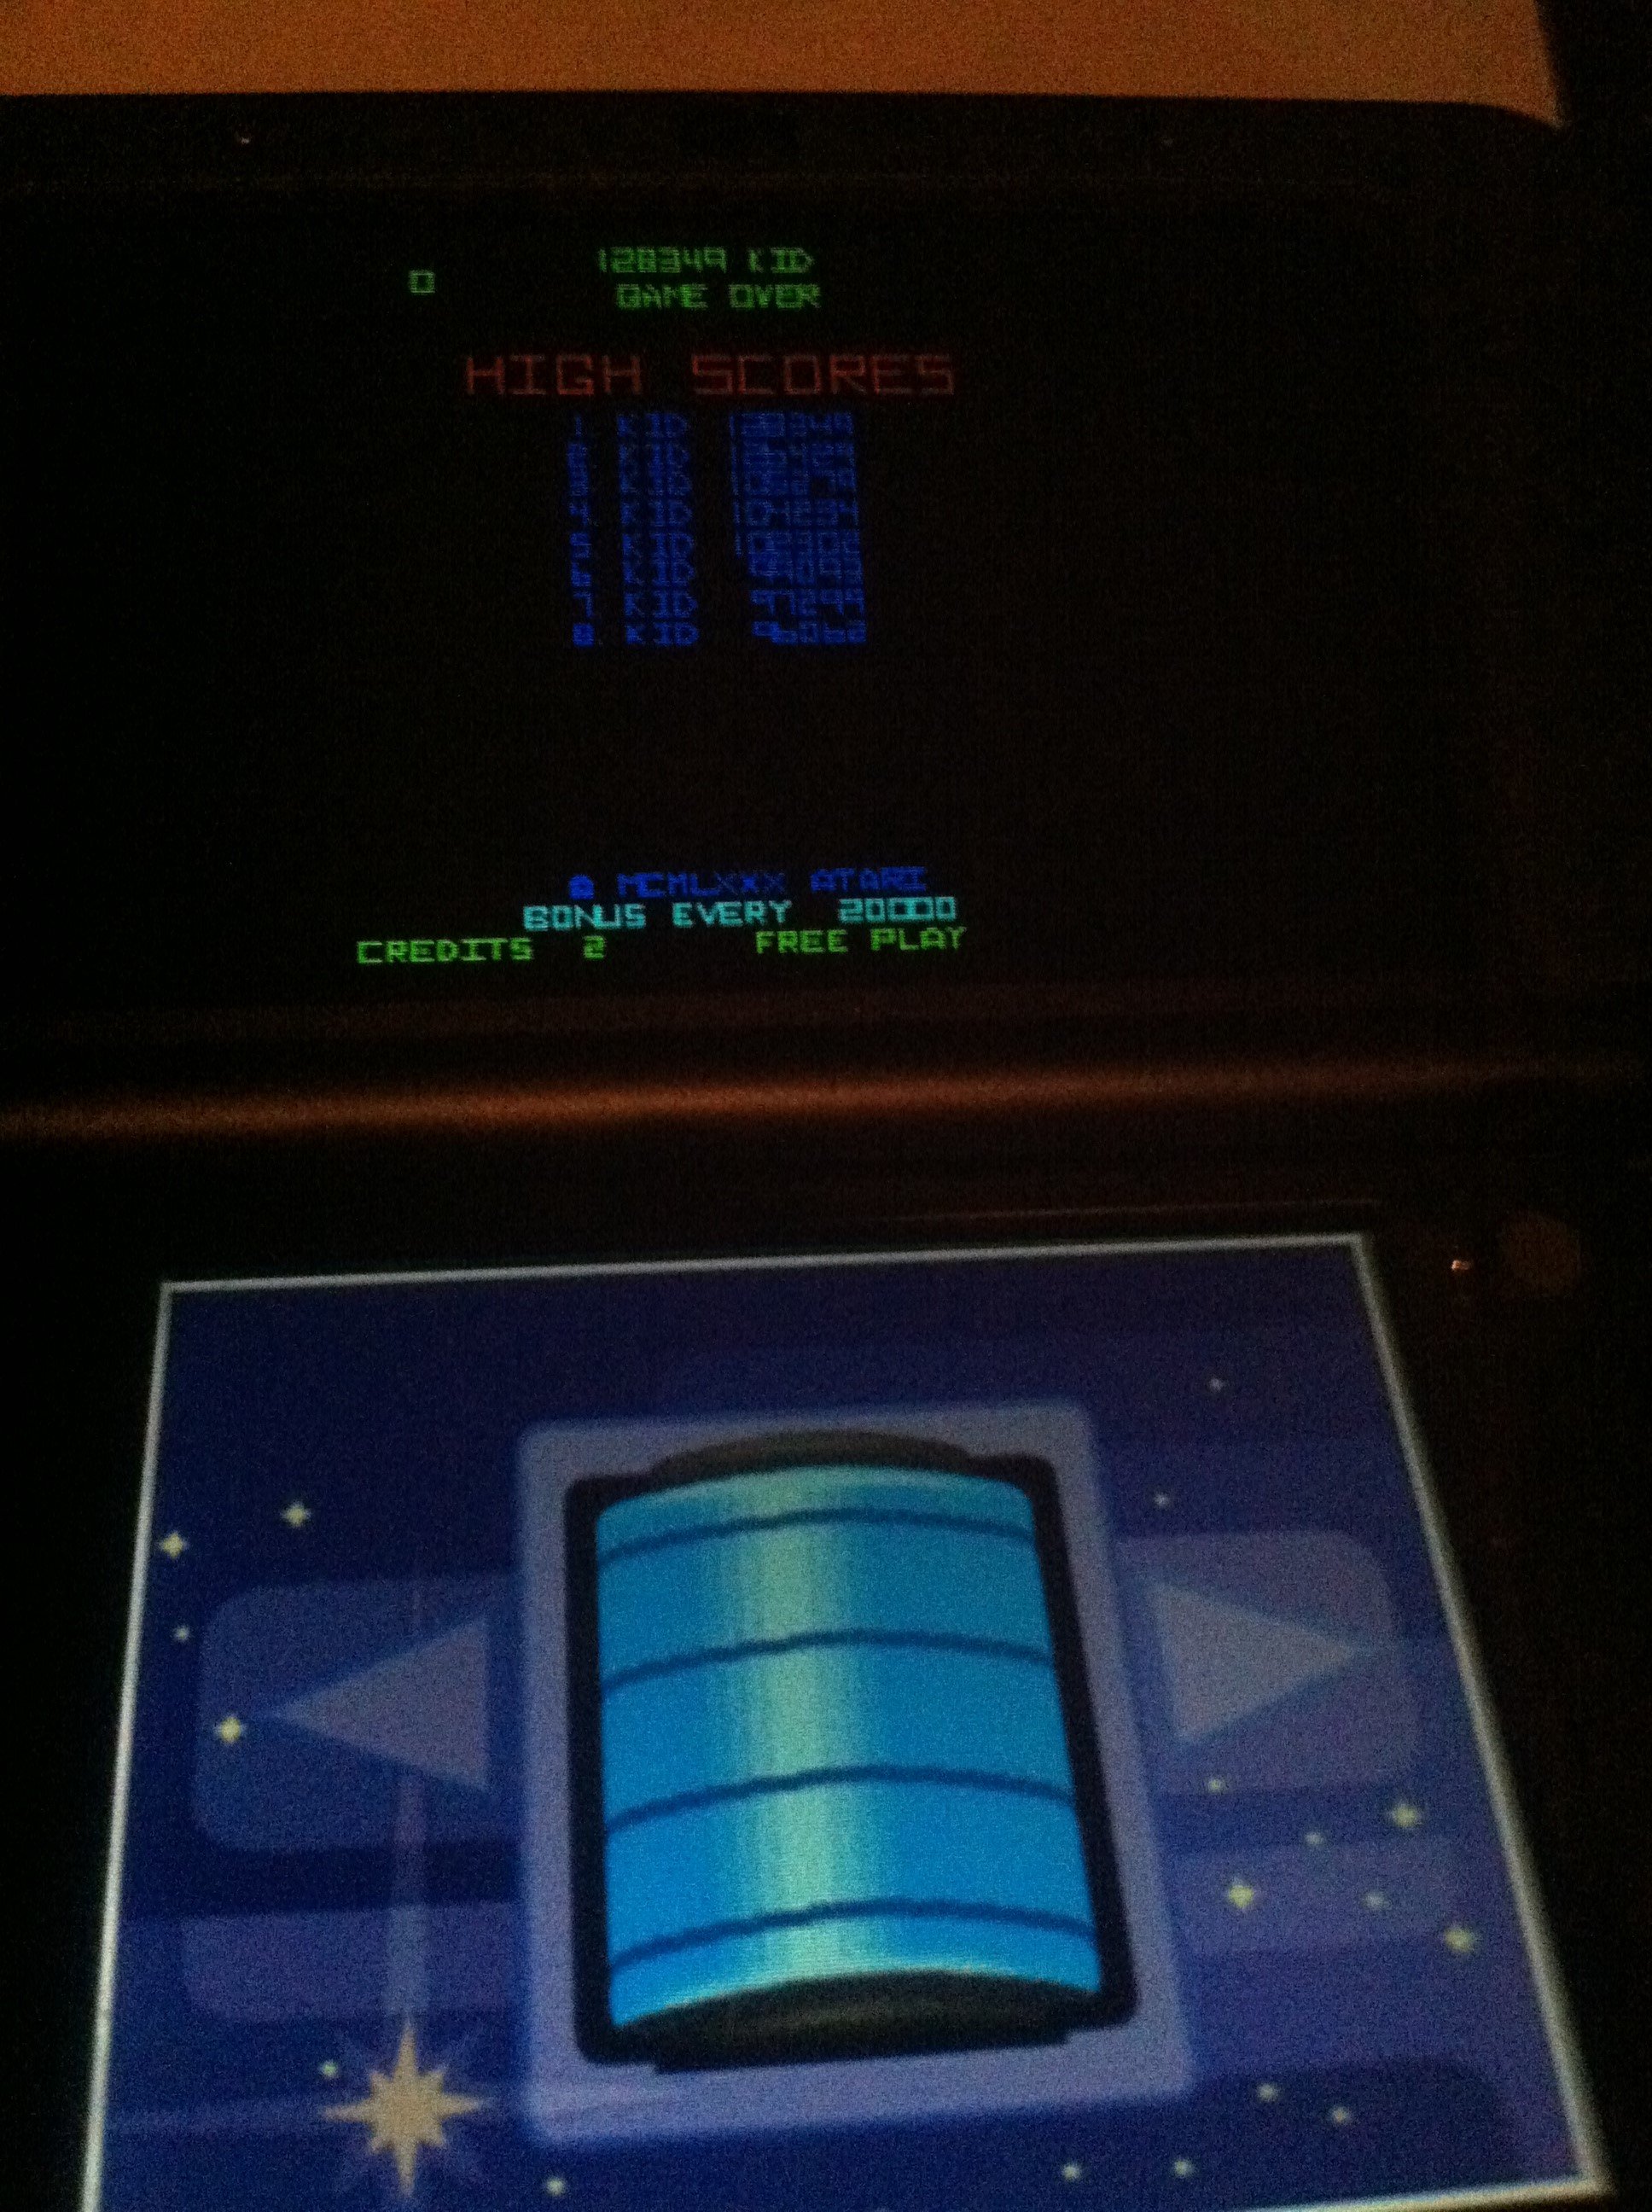 Atari Greatest Hits: Volume 1: Tempest [Arcade/Level 9 or greater Start] 96,062 points